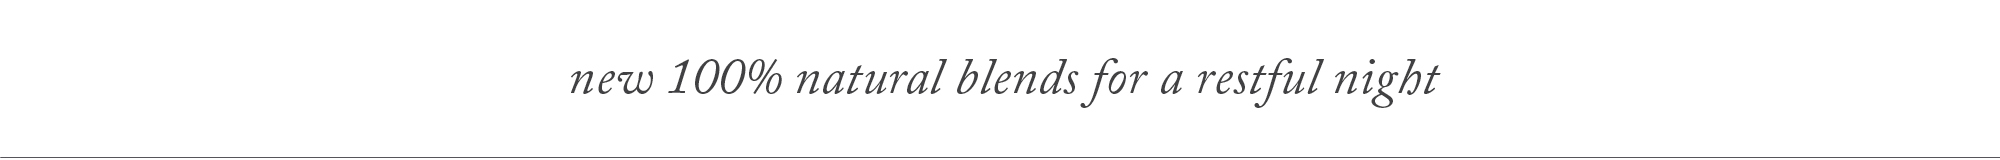 New 100% natural blends for a restful night